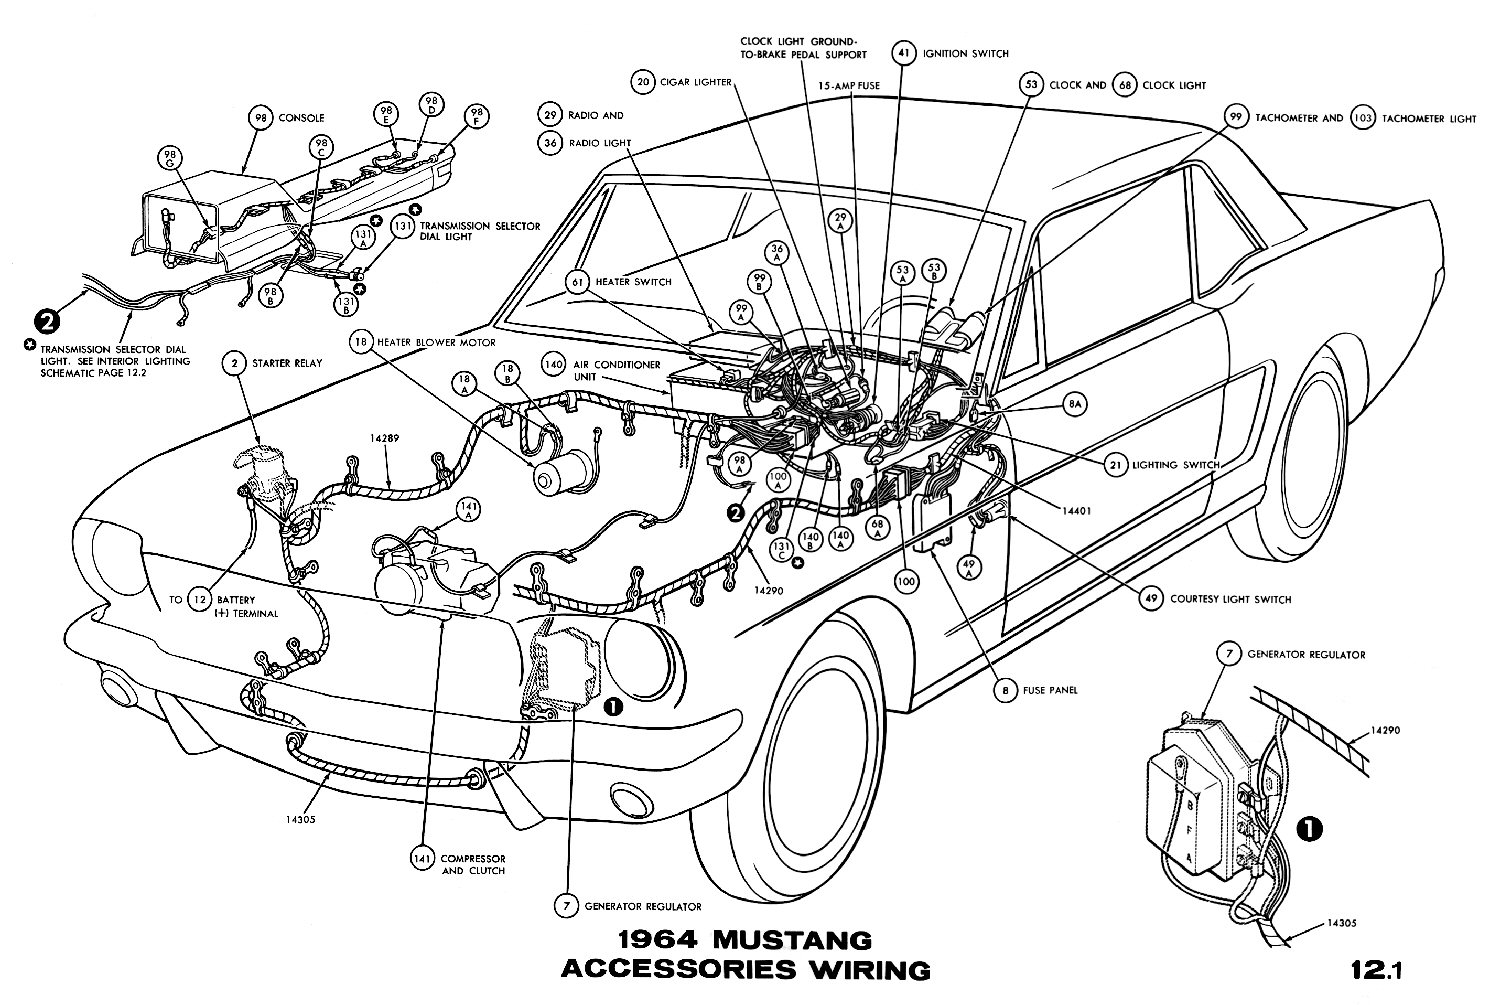 1964 Mustang Wiring Diagrams Average Joe Restoration 1968 Dash Cluster Diagram Sm1964l Accessories Pictorial Or Schematic